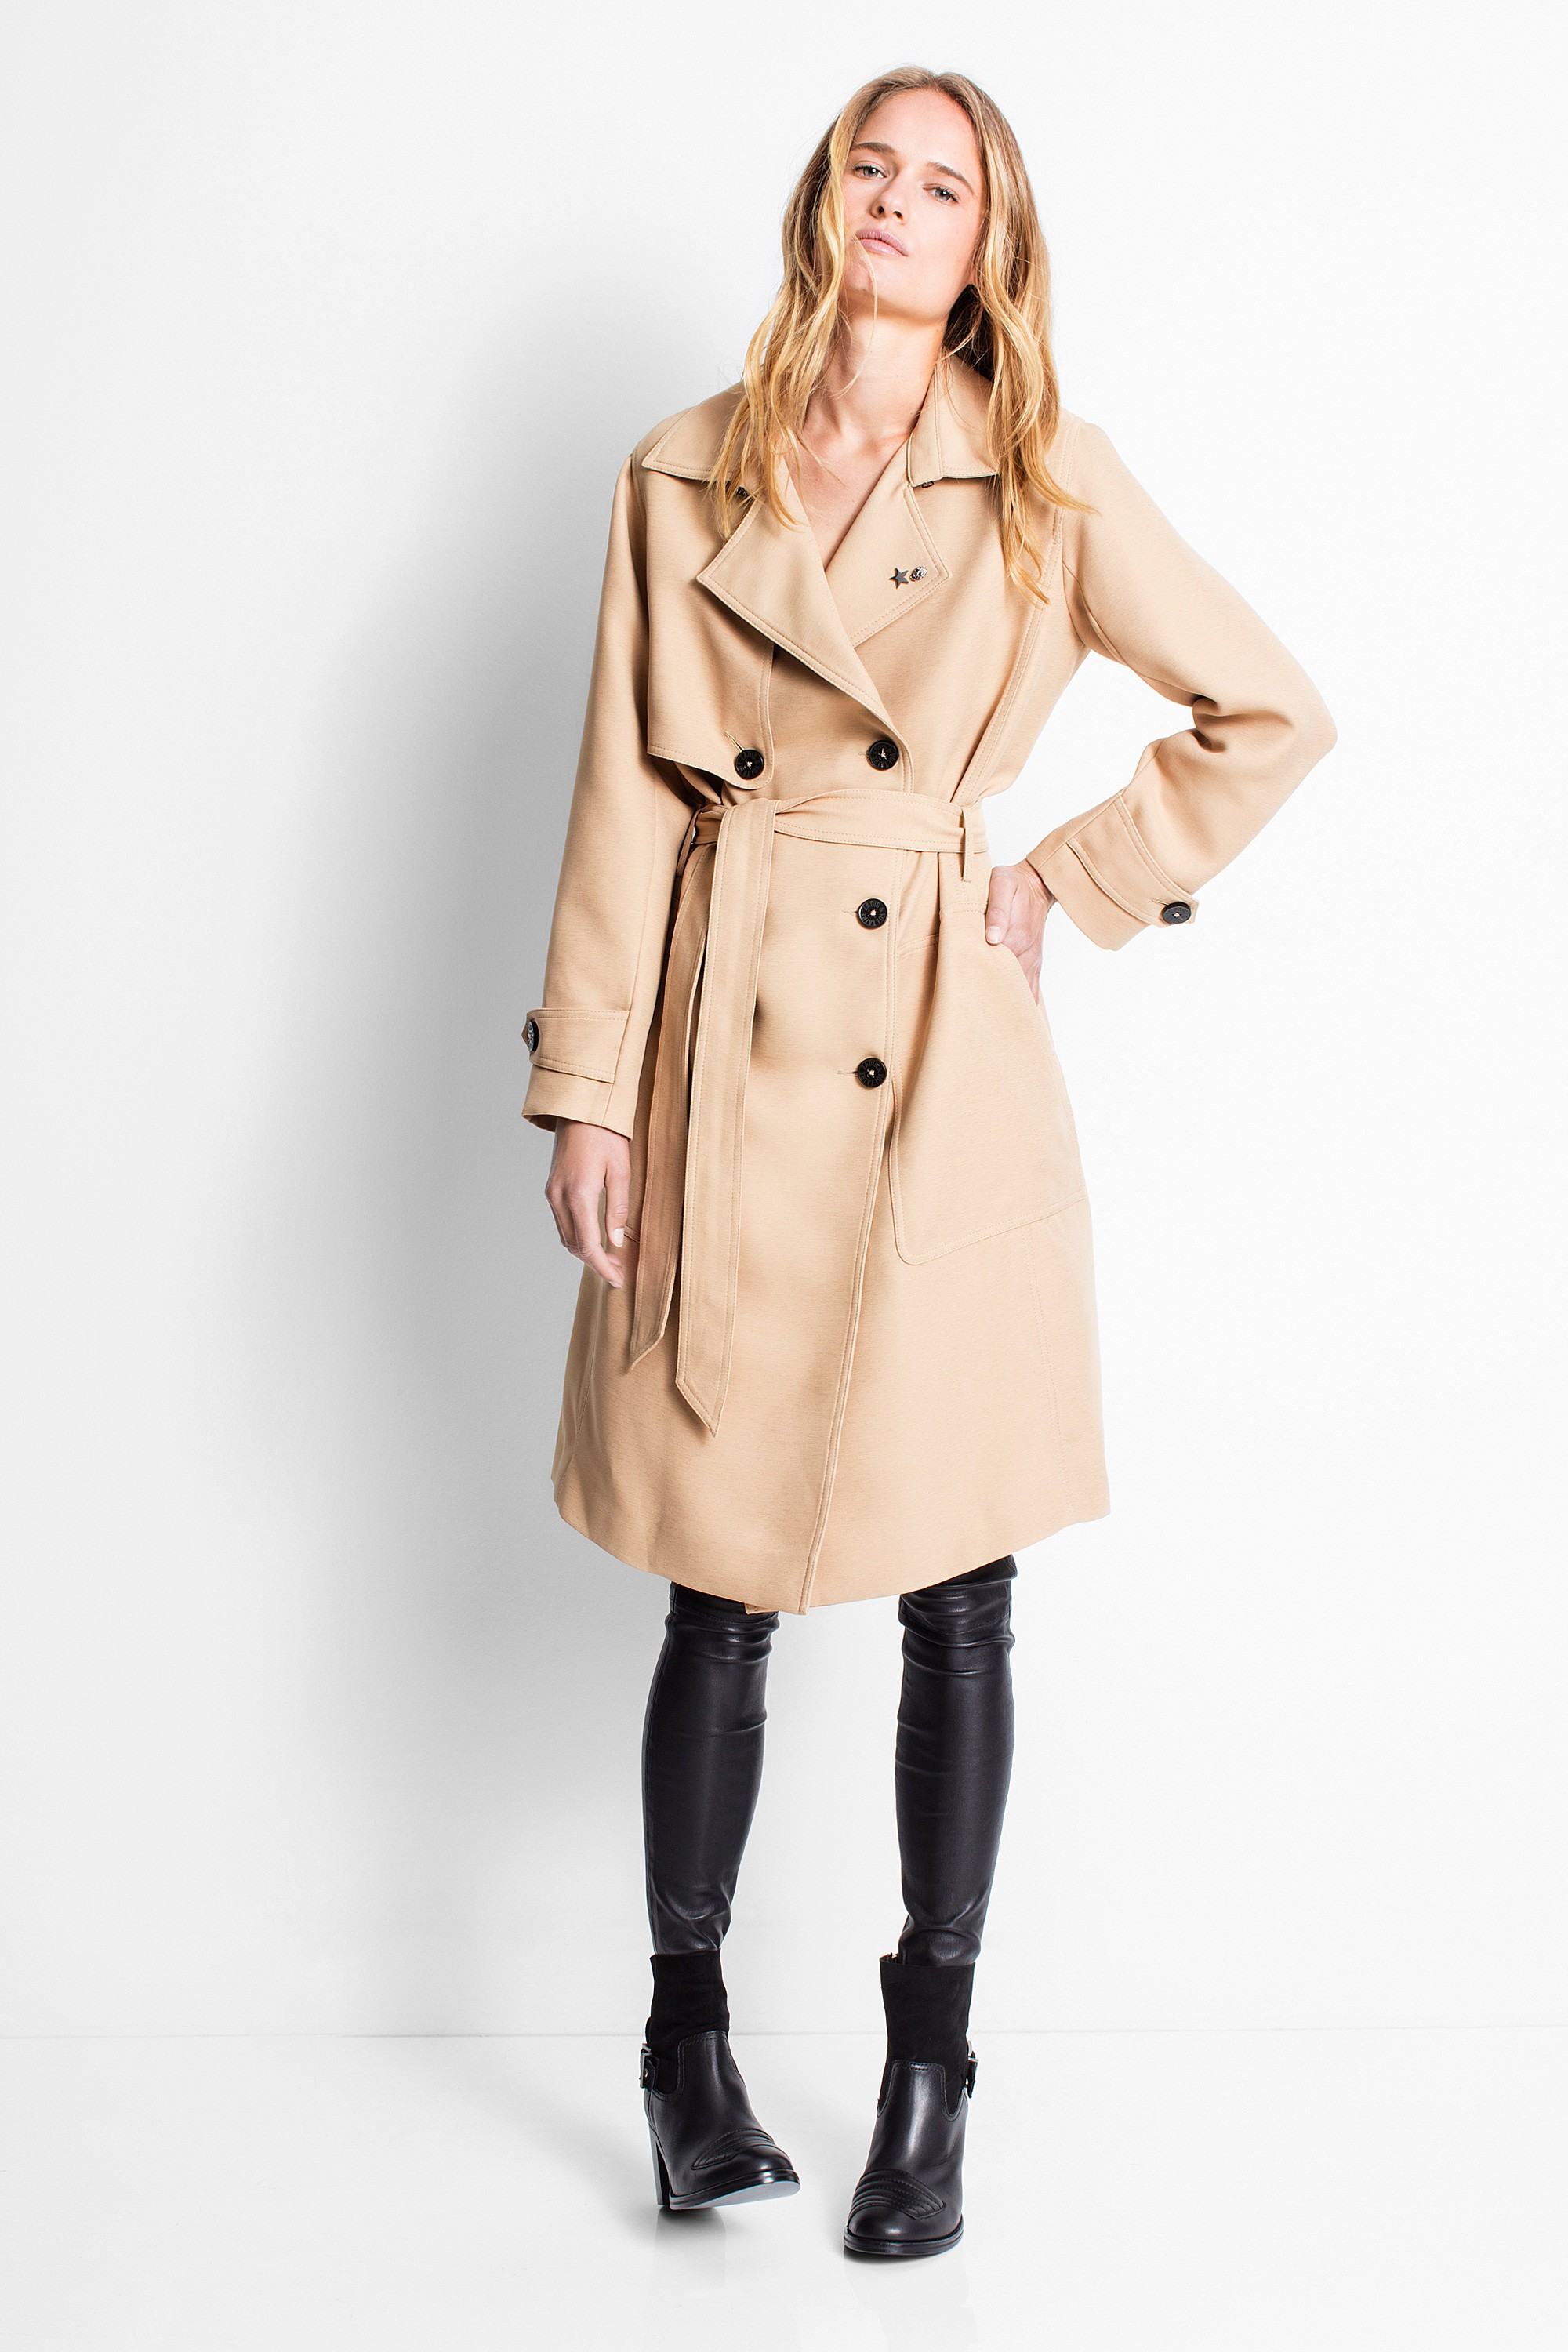 Zadig & Voltaire ,  Mai Deluxe Trench , £222 (half price)